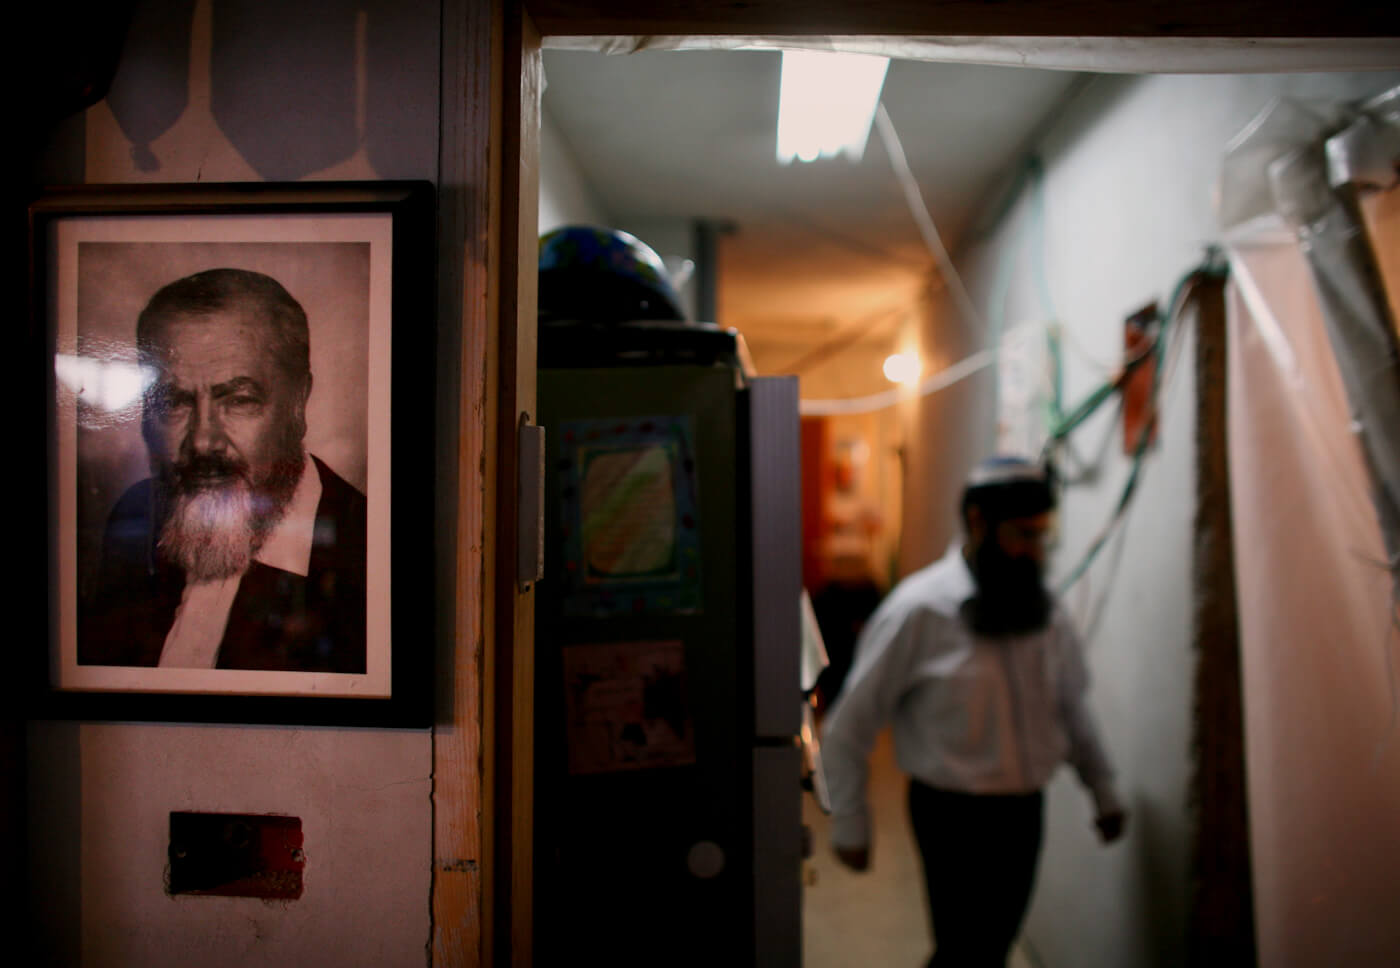 With a portrait of late Rabbi Meir Kahane on the wall, left, a Jewish settler walks inside a building taken from a Palestinian family in Hebron, Nov. 16, 2008. Dan Balilty | AP